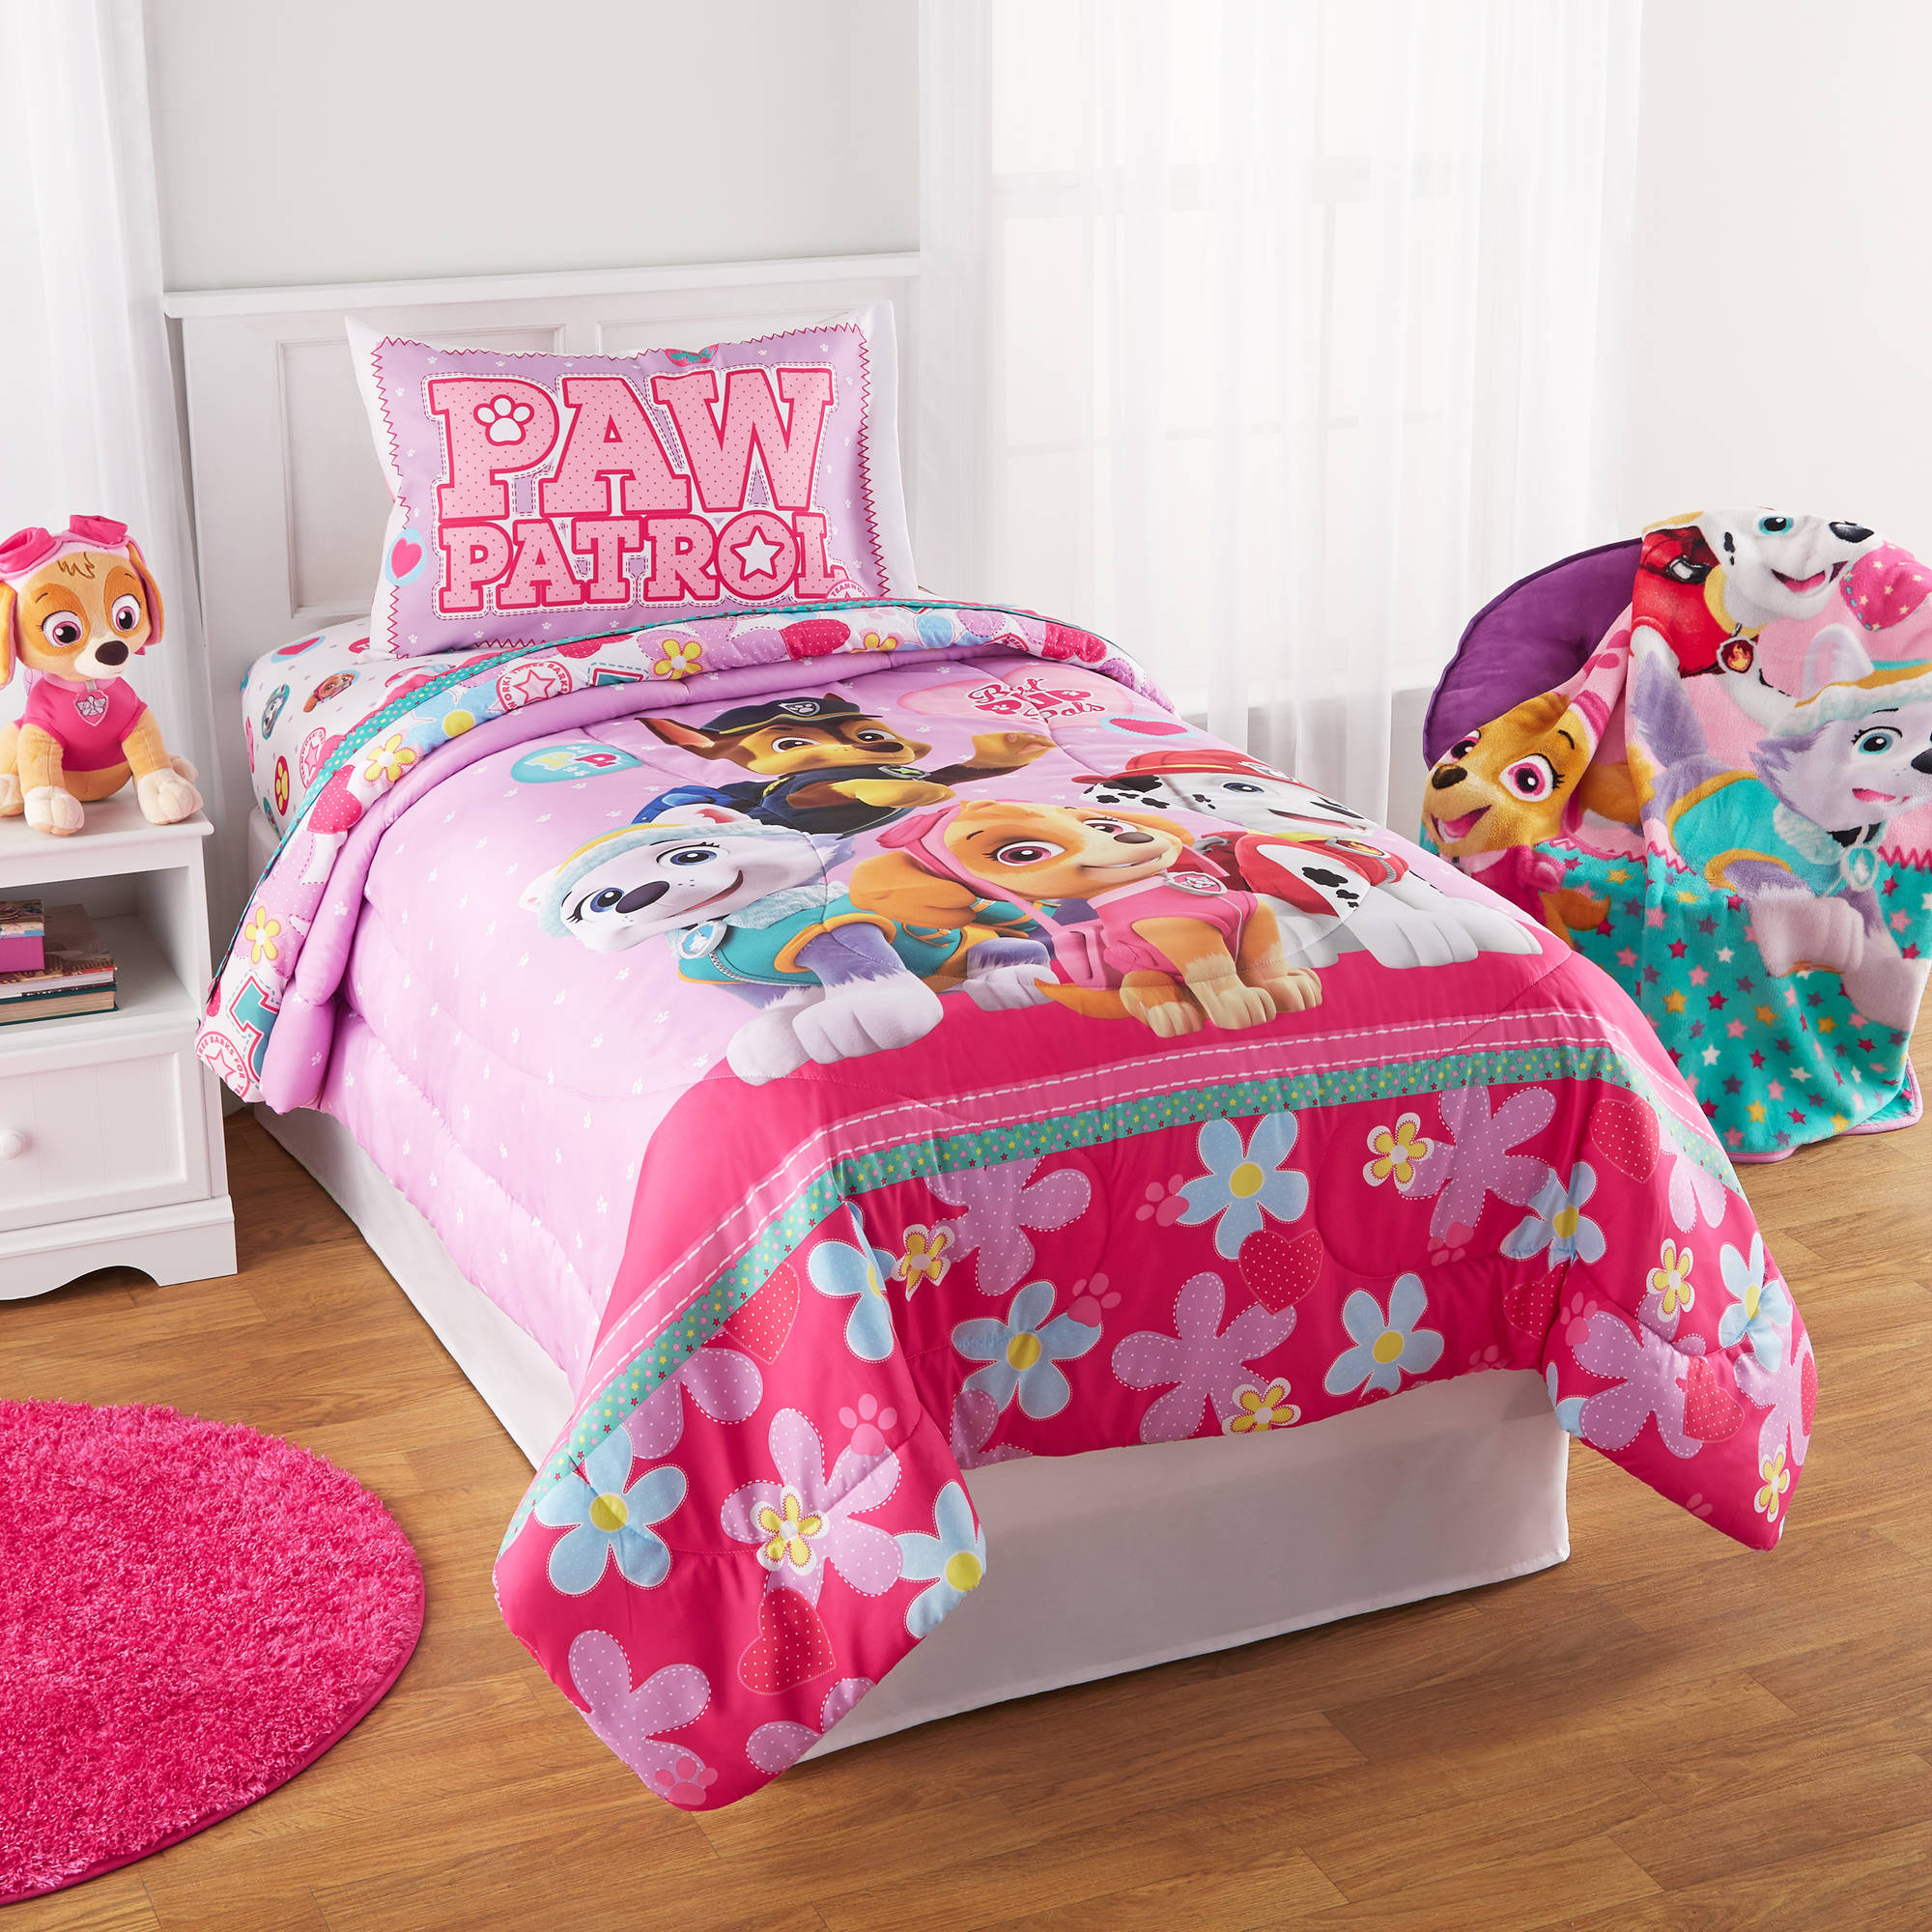 Paw Patrol Puppy Girls Pink Full Comforter & Sheets (5 Piece Kids Bed In A Bag)